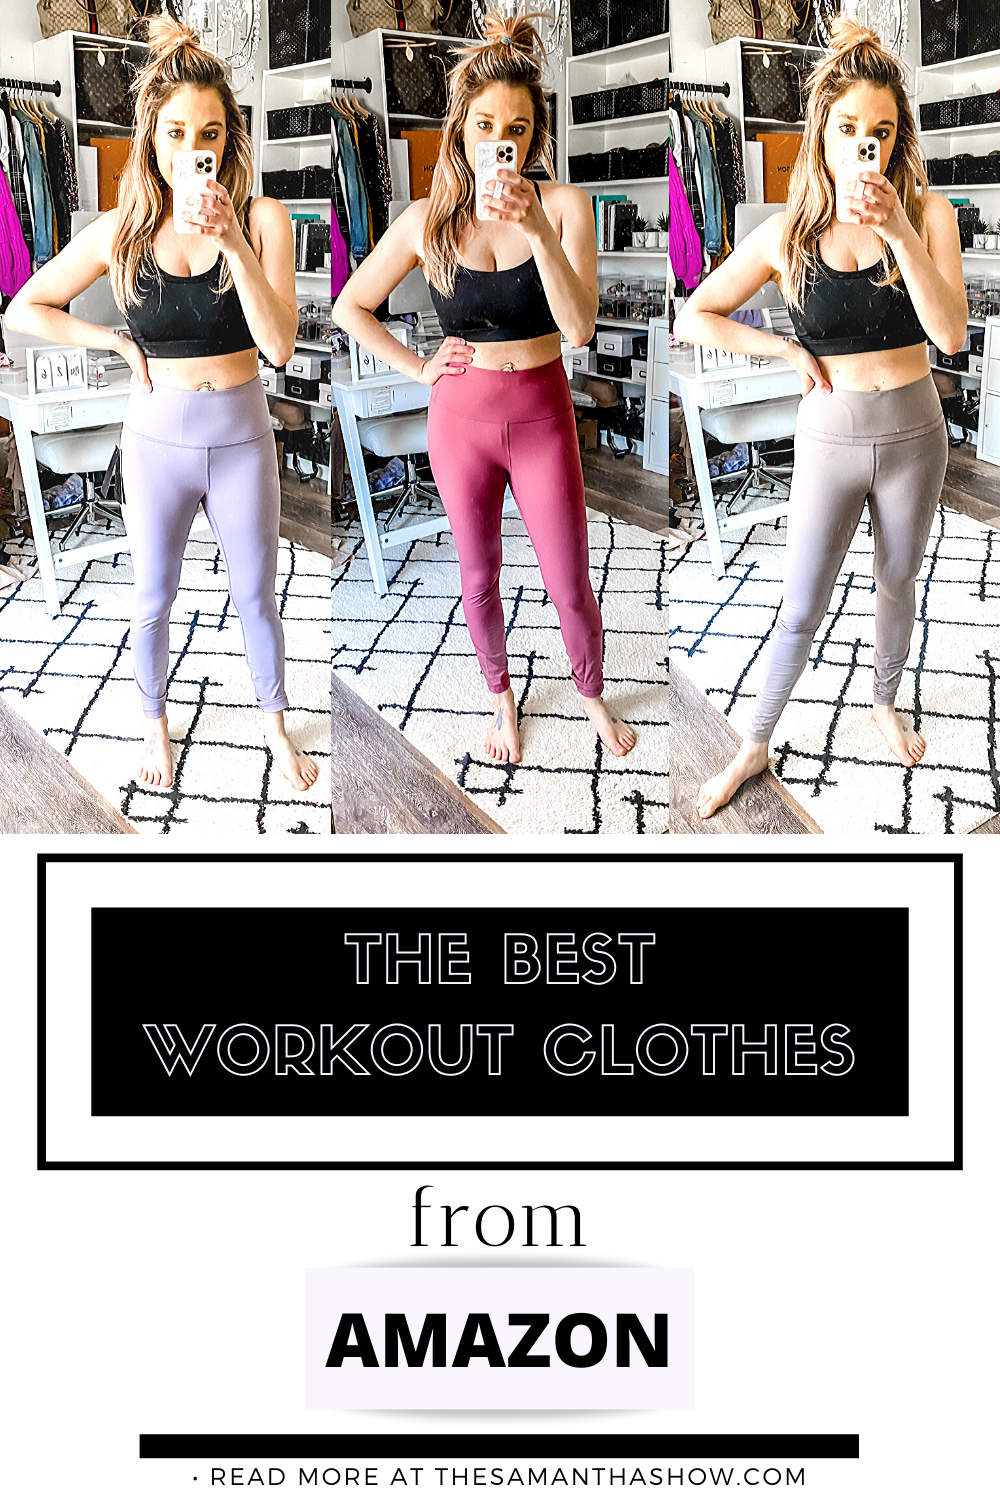 the best workout clothes from Amazon